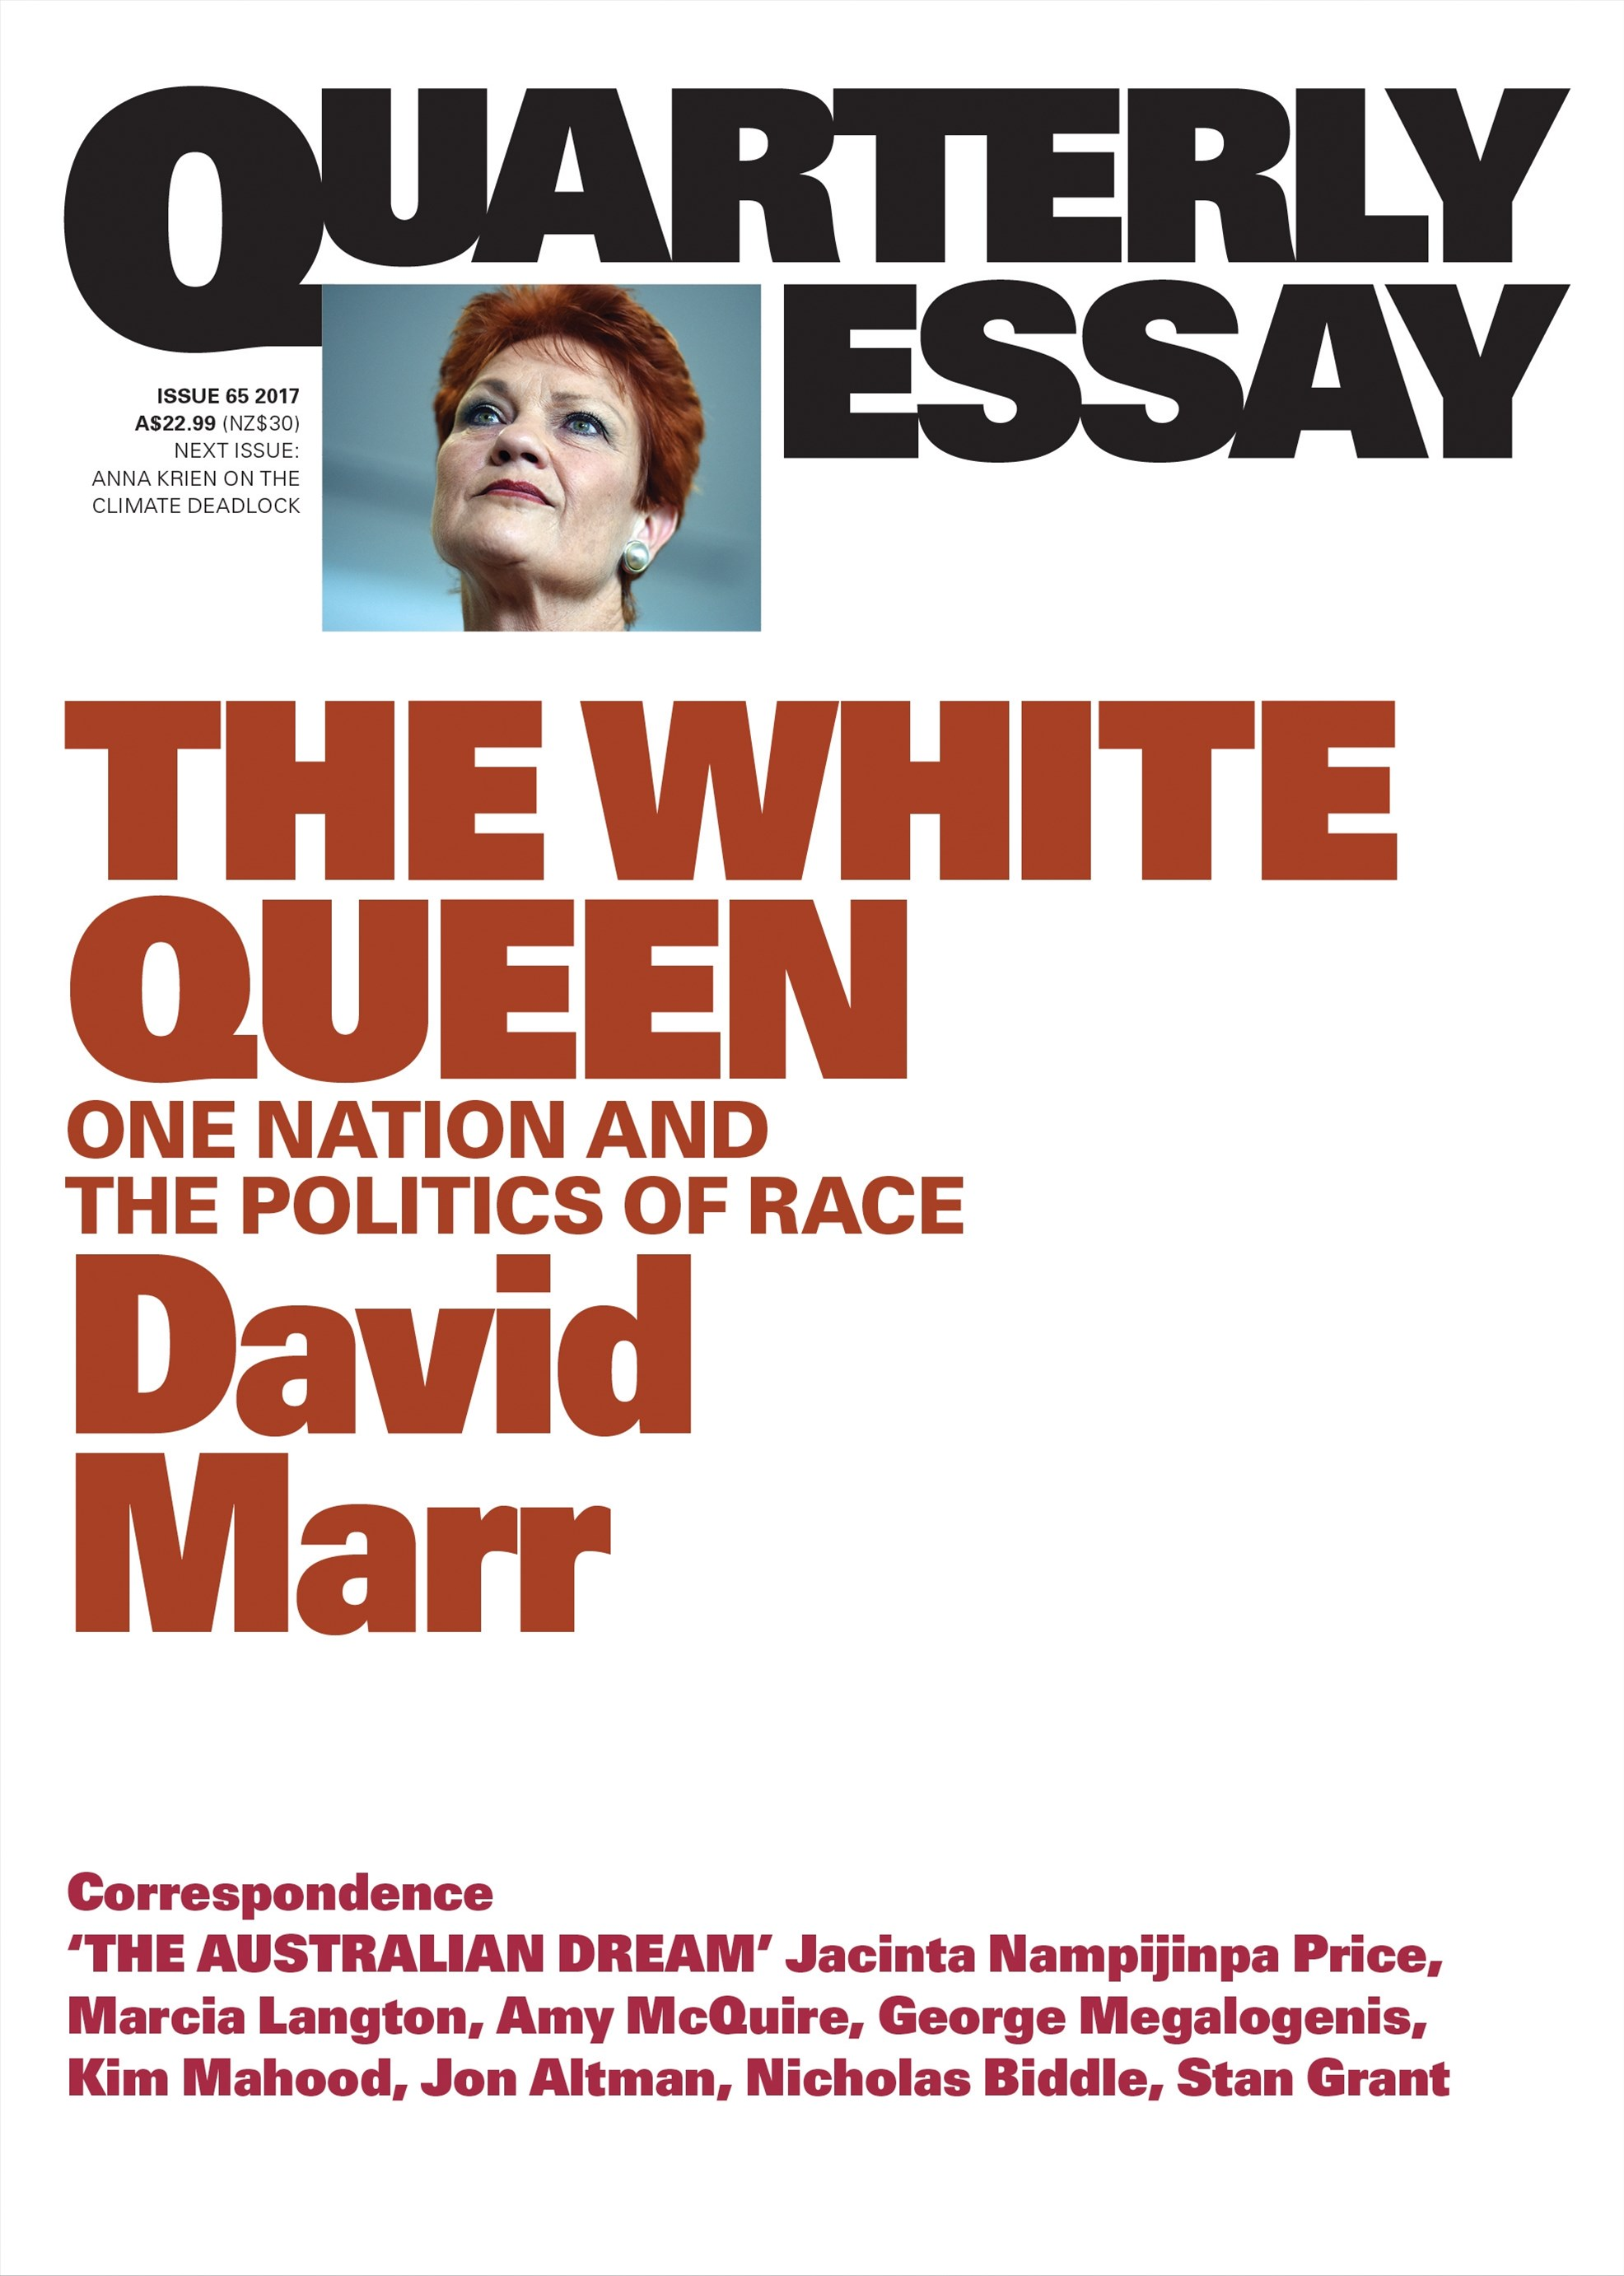 The White Queen: One Nation and the Politics of Race: QuarterlyEssay 65